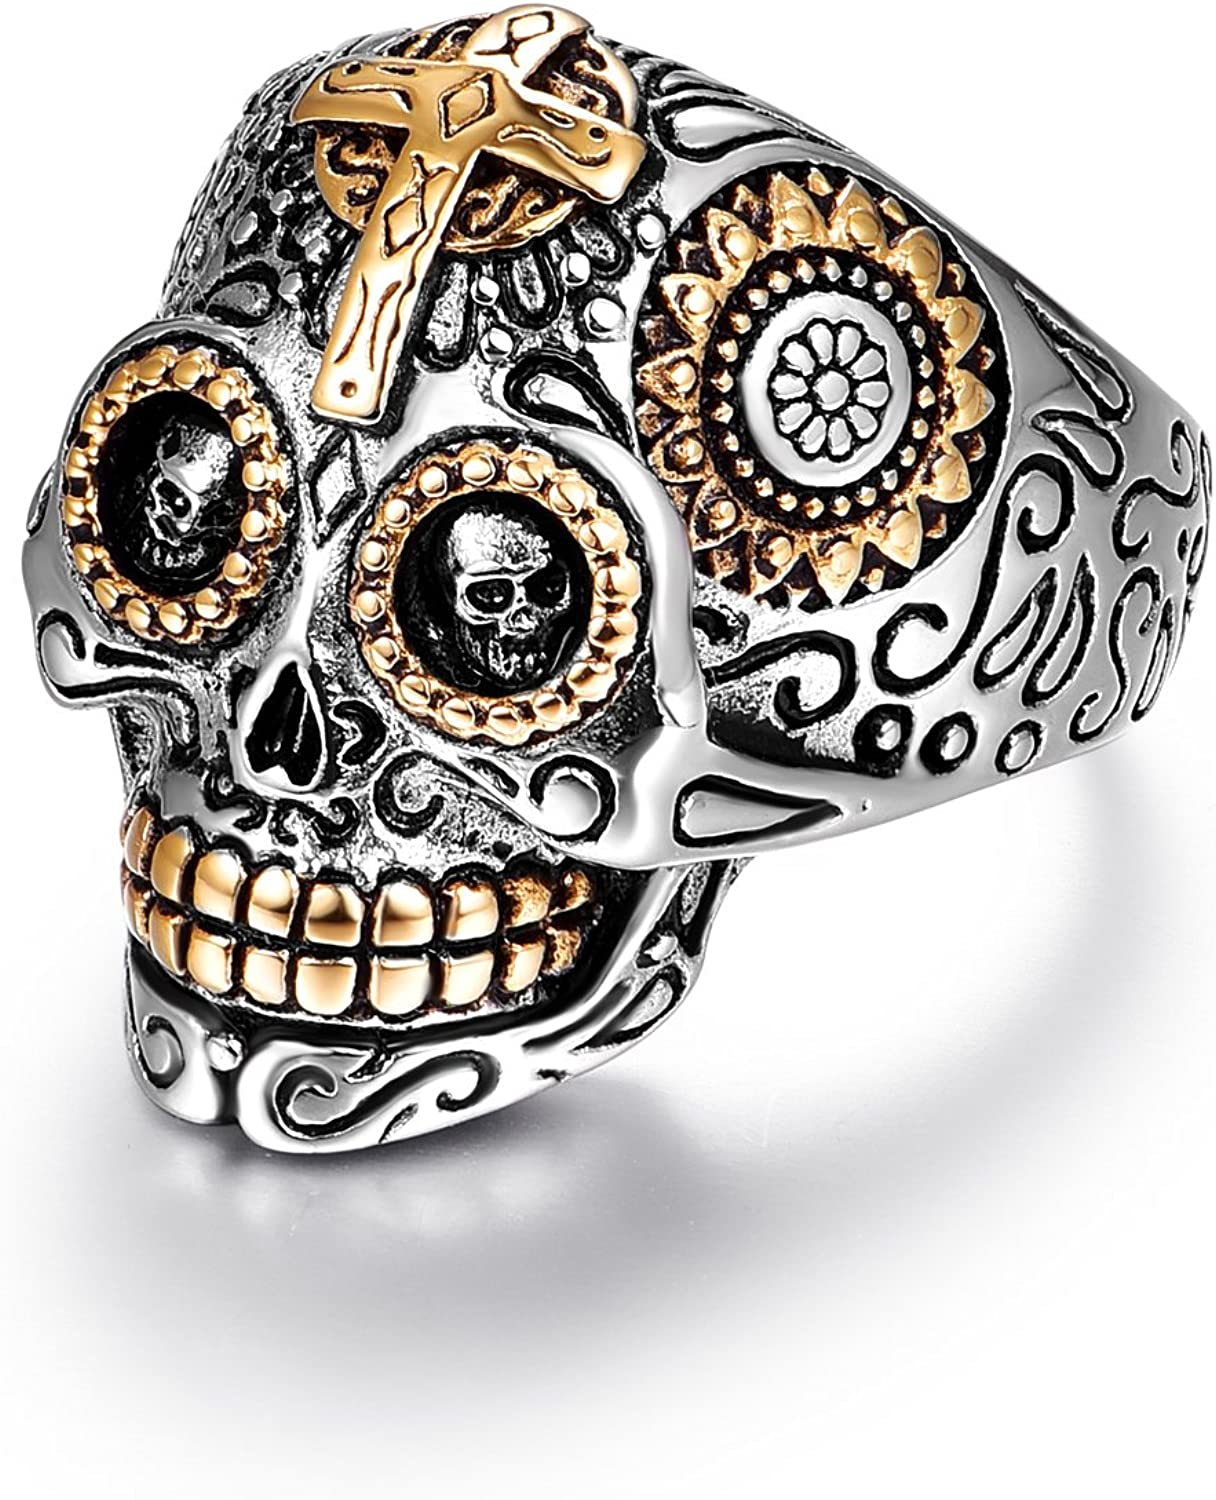 LAOYOU Sugar Skull Rings for Men Women, Stainless Steel Day of The Dead Gothic Cross Mens Jewelry, Biker Cool Ring